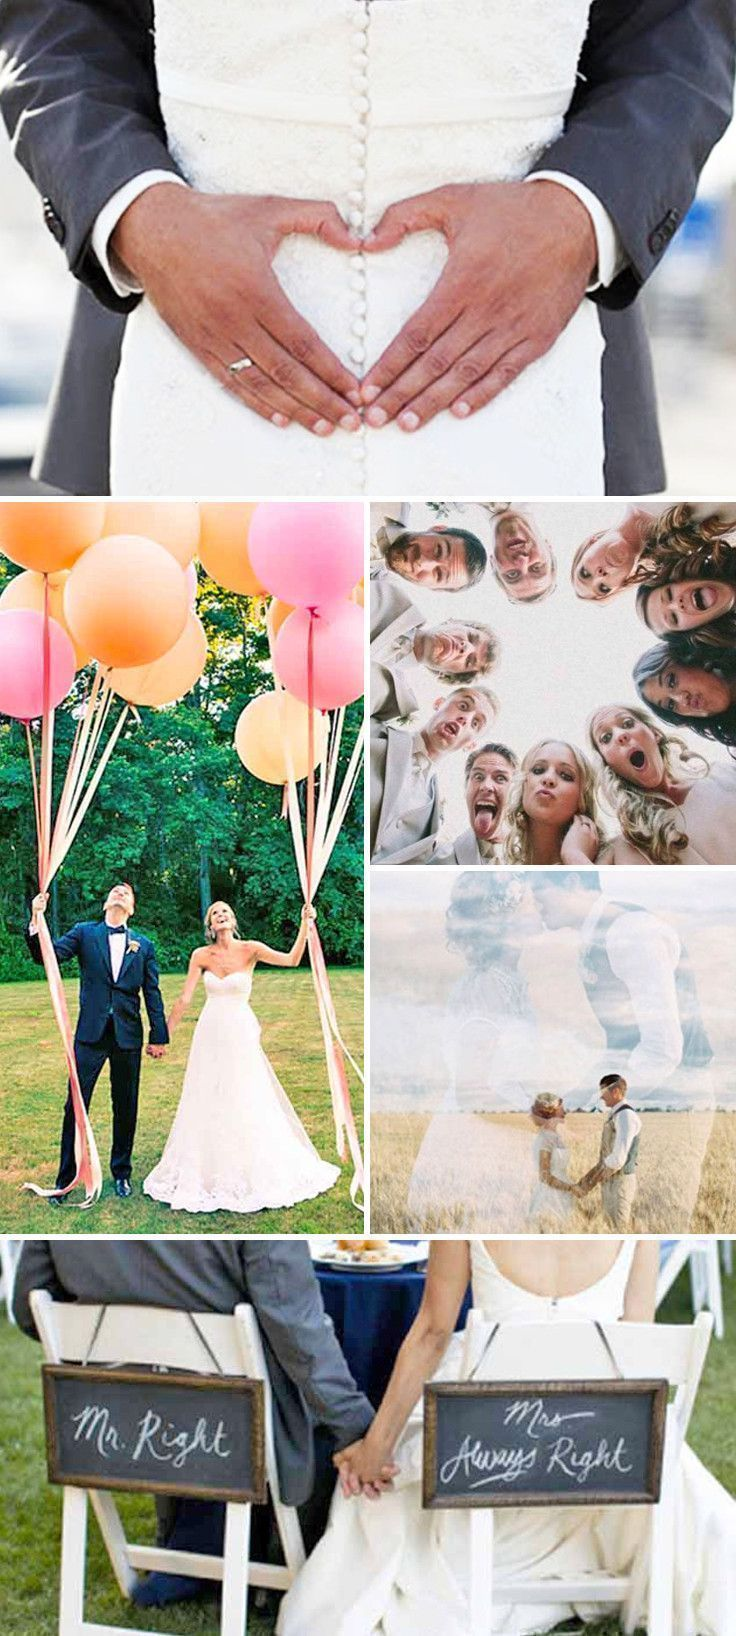 cool wedding shot ideas%0A Wedding Photography Ideas And Poses     Must see shots for your wedding  album  See more